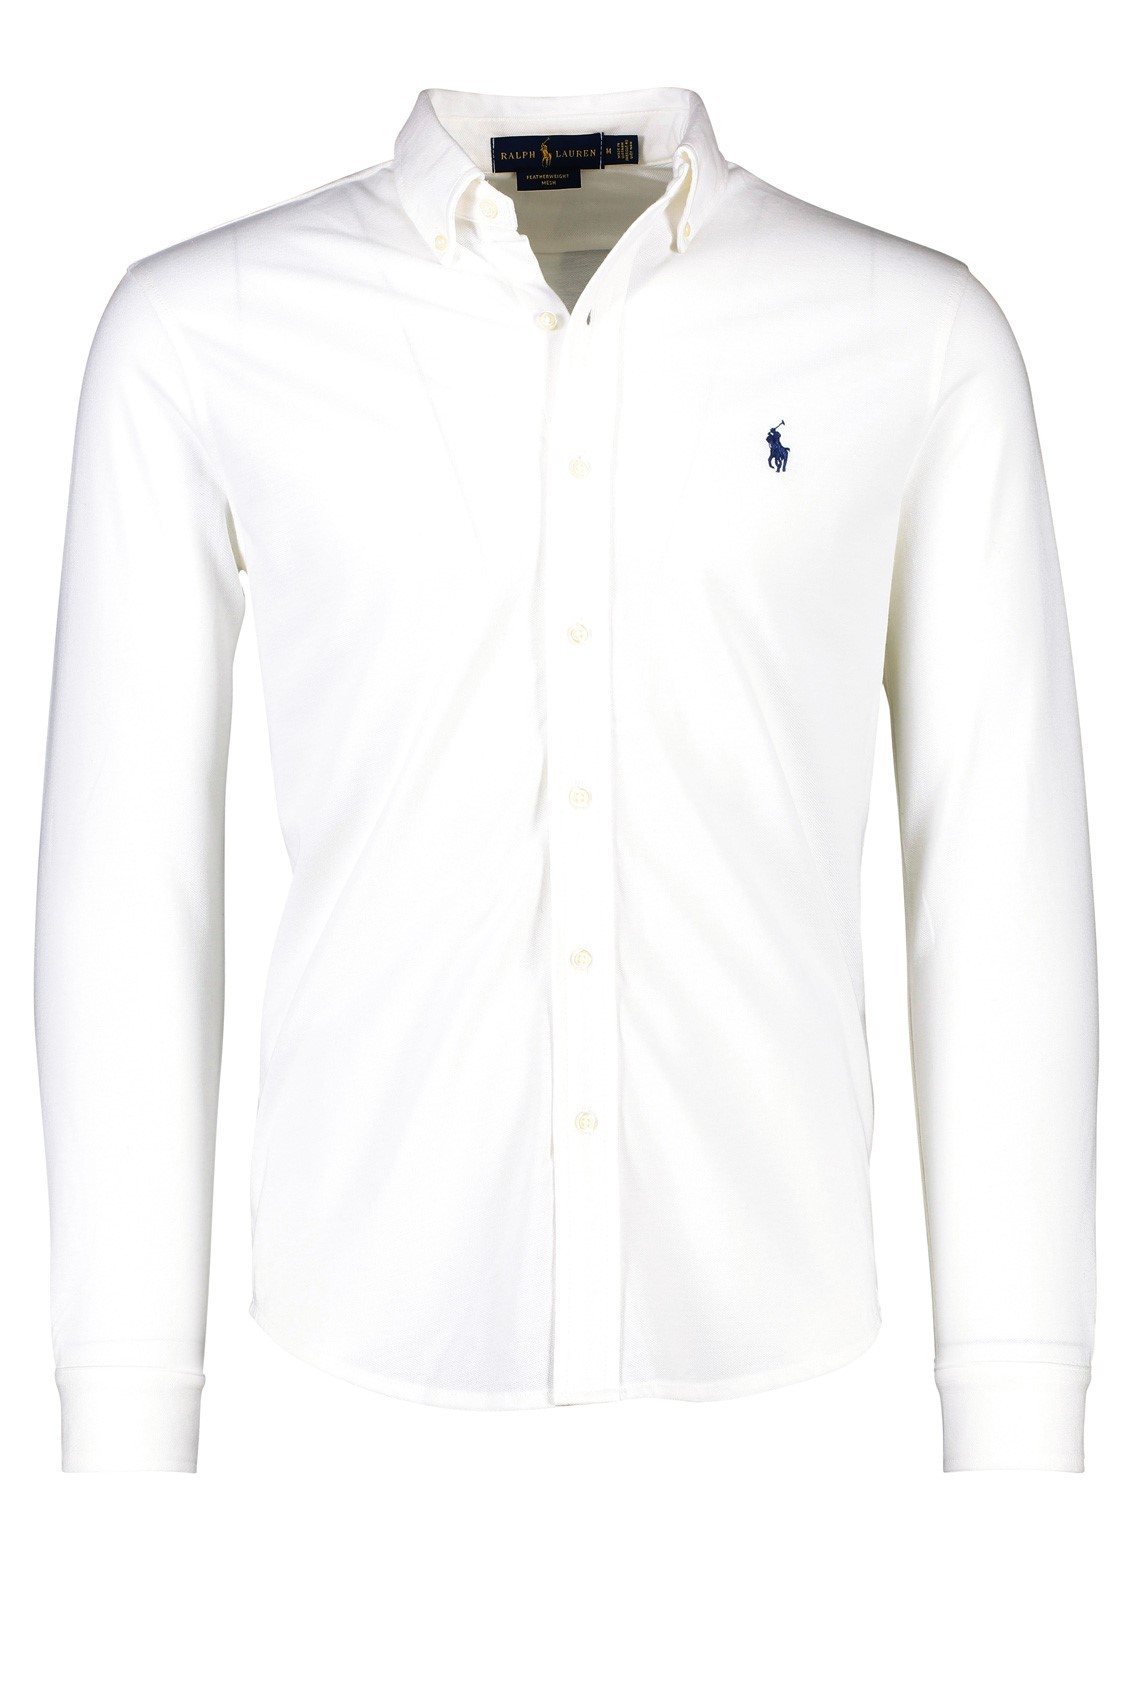 bee66eac1a86 Polo Ralph Lauren Overhemd Wit Effen Normale fit